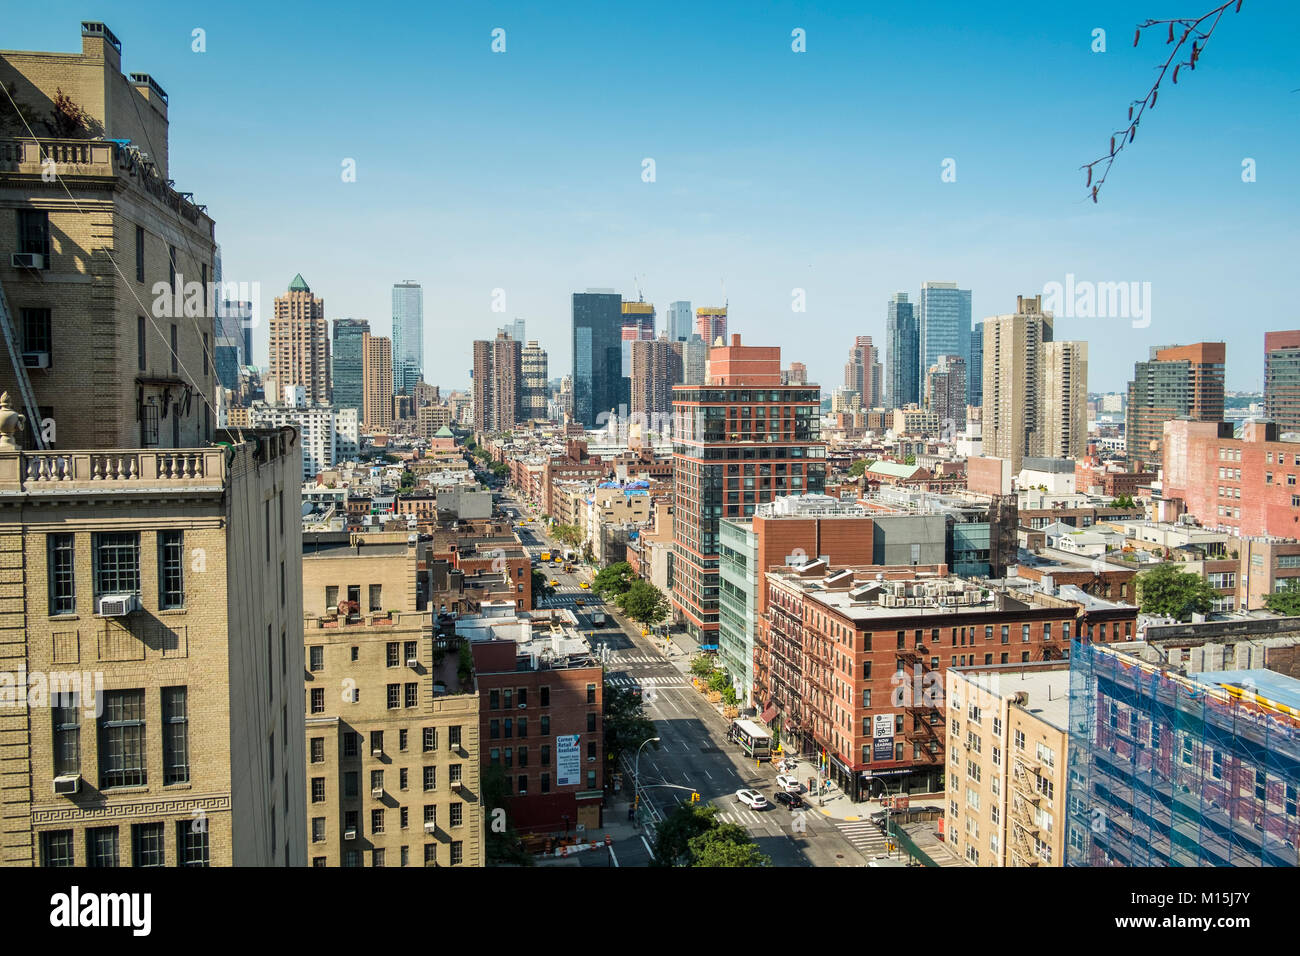 A view from a roof top somewhere on West 5th Street and 9th Avenue. - Stock Image